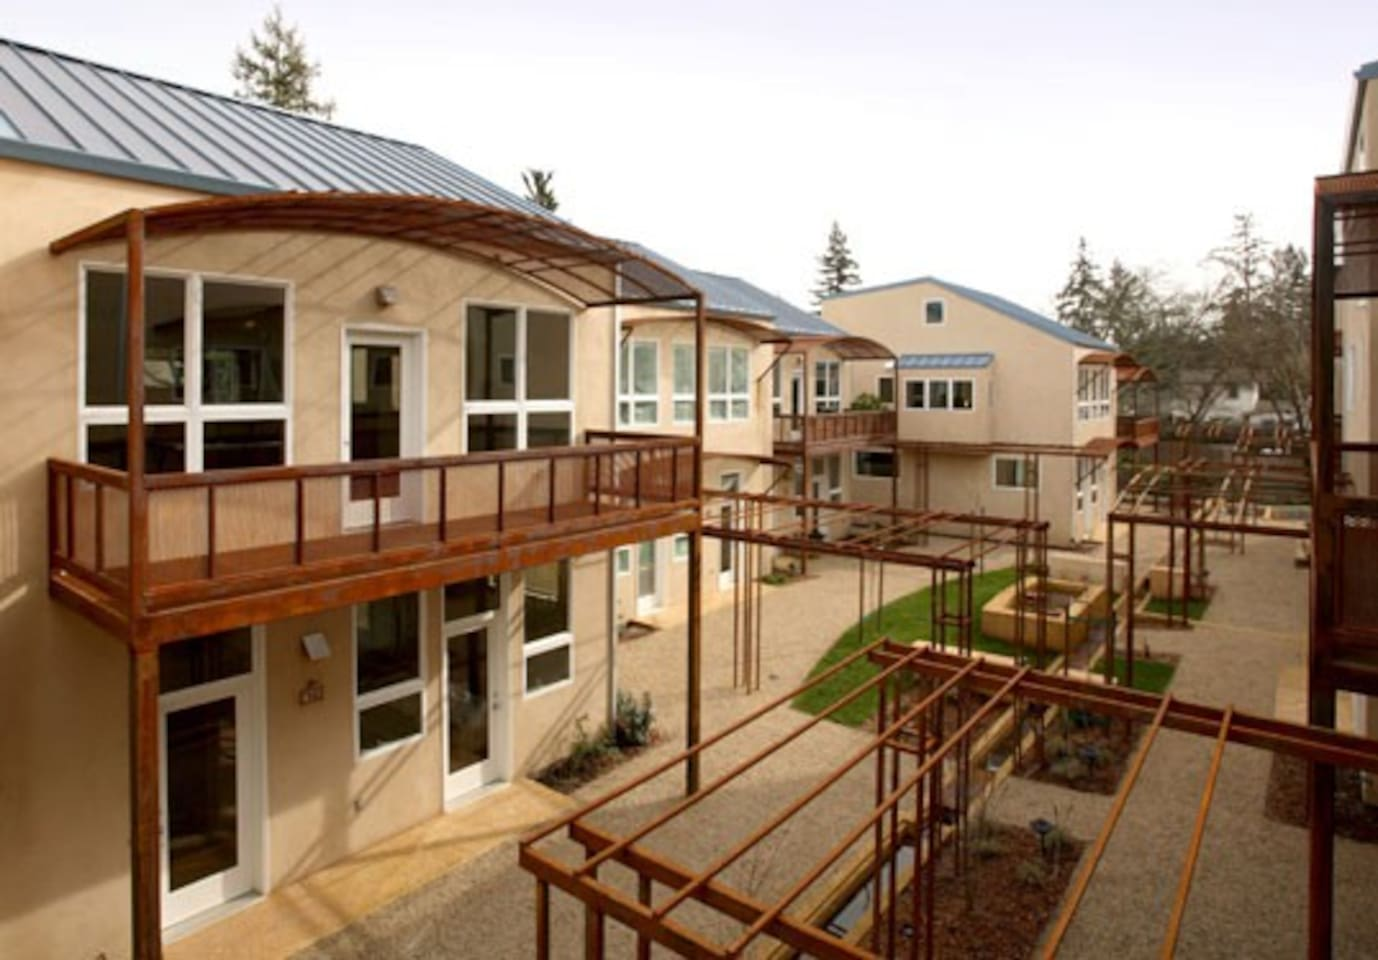 Florence Lofts, built in 2008 by renown eco-progressive developers Joe Marshall, Robert Nissenbaum and Steve Sheldon (architect), were the first LEED Gold sustainably designed live/work community in West Sonoma County/Sebastopol.